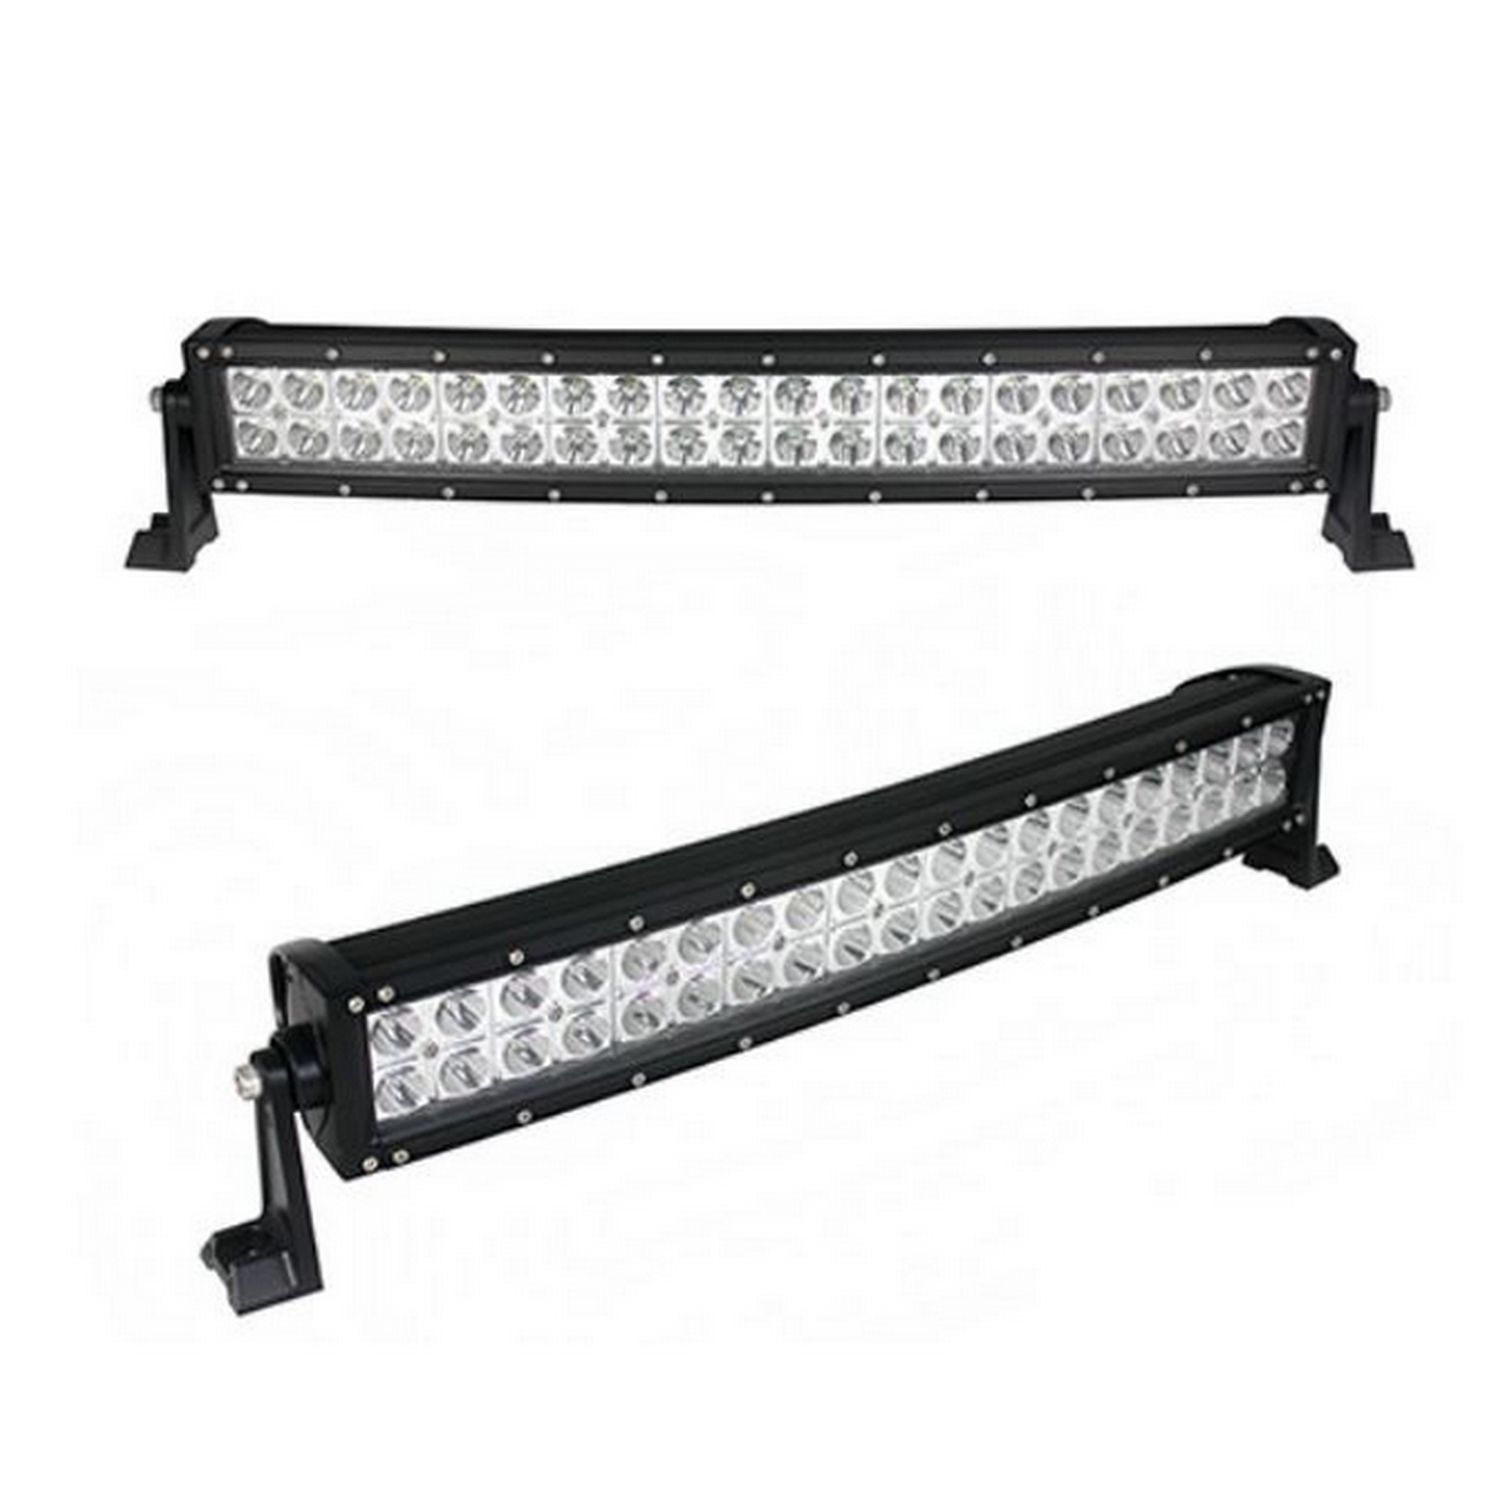 Double Row Curved City Series #72420 LED Light Bar 22″